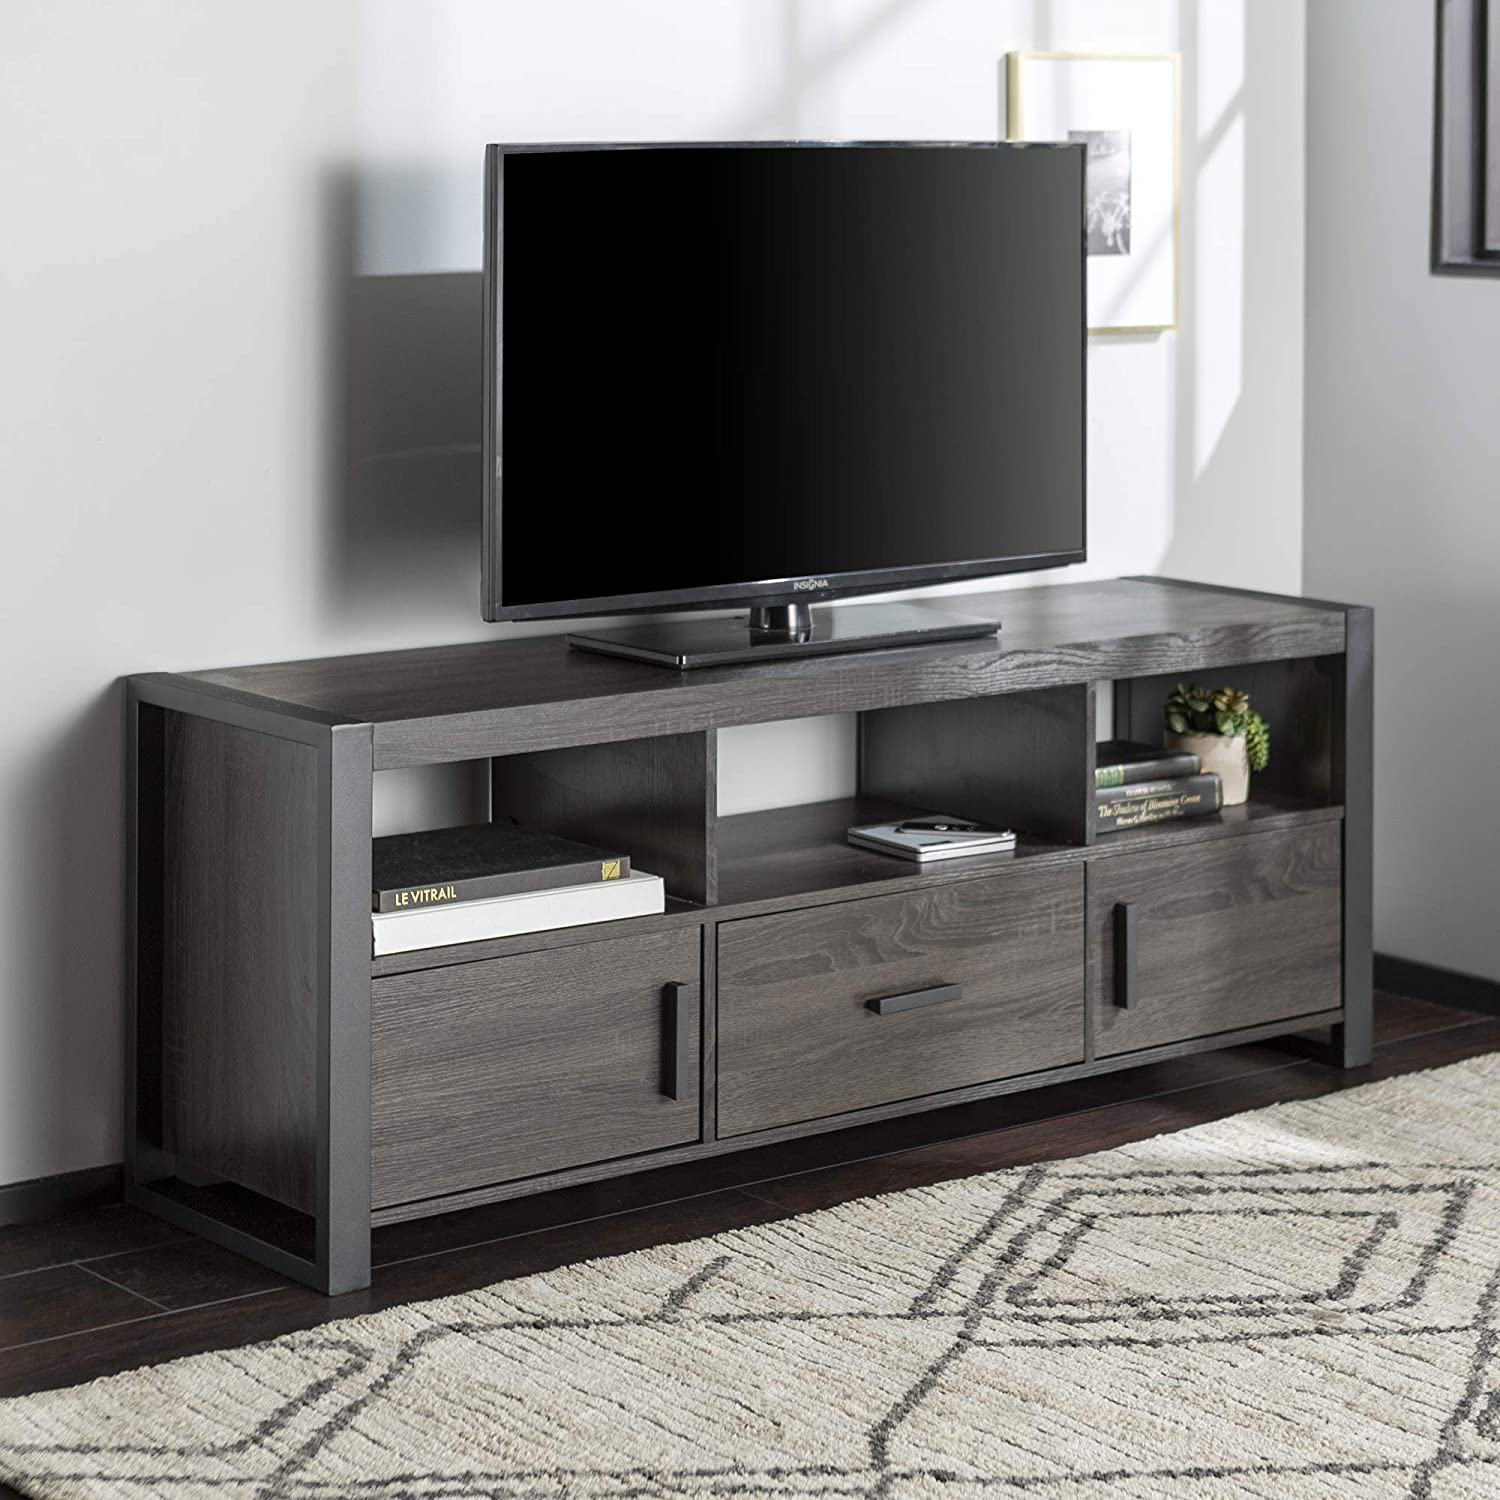 Walker Edison WE Furniture, TV Stand, Charcoal, 60 Inch